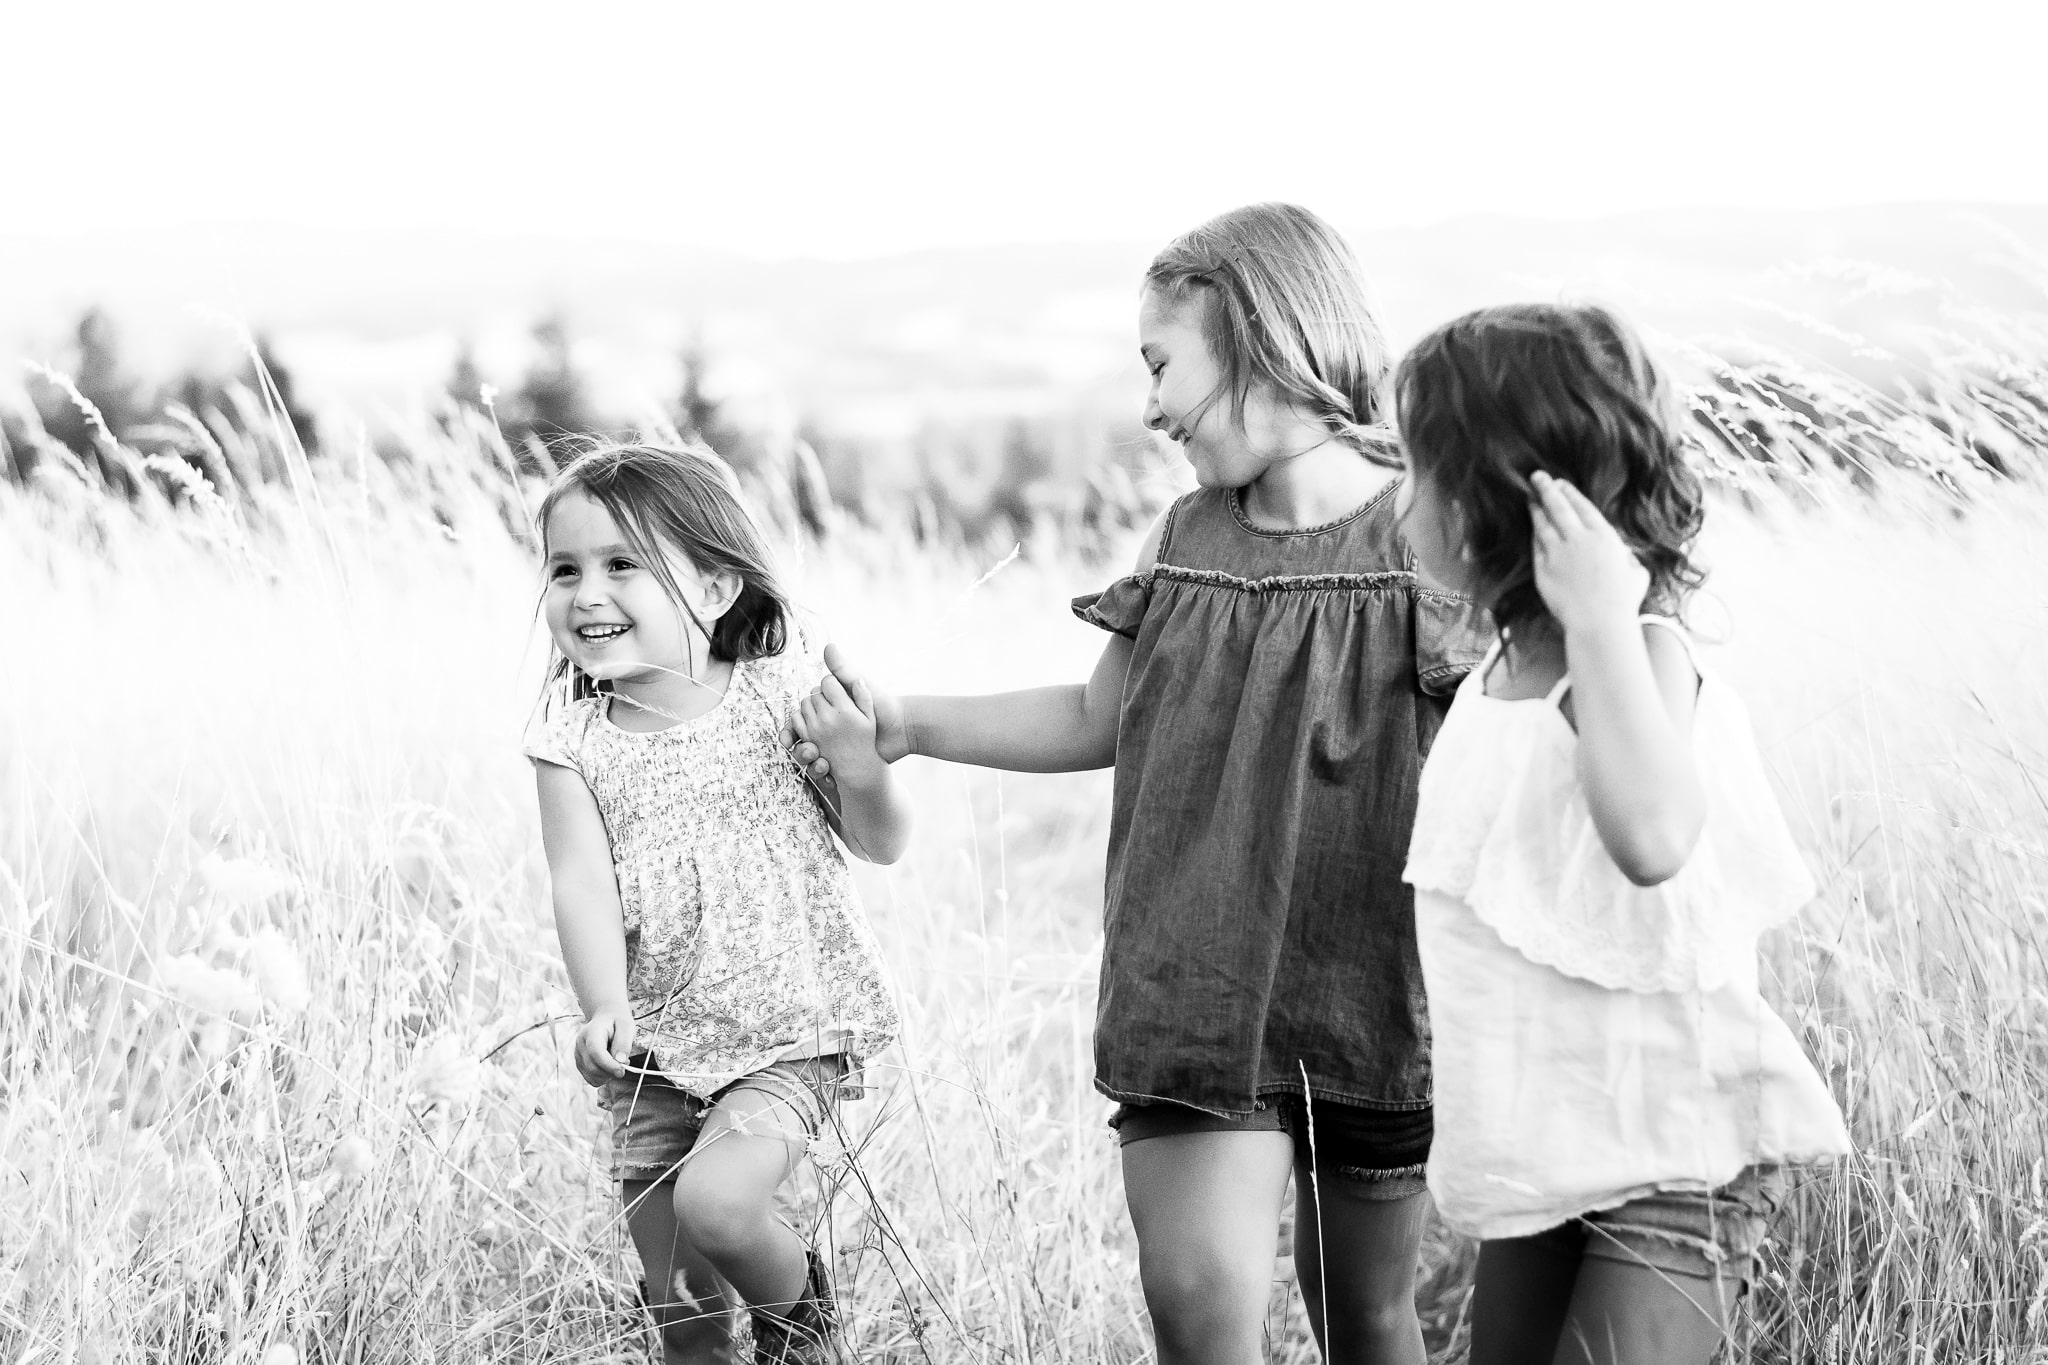 Sisters running in a field together in Beaverton, Oregon